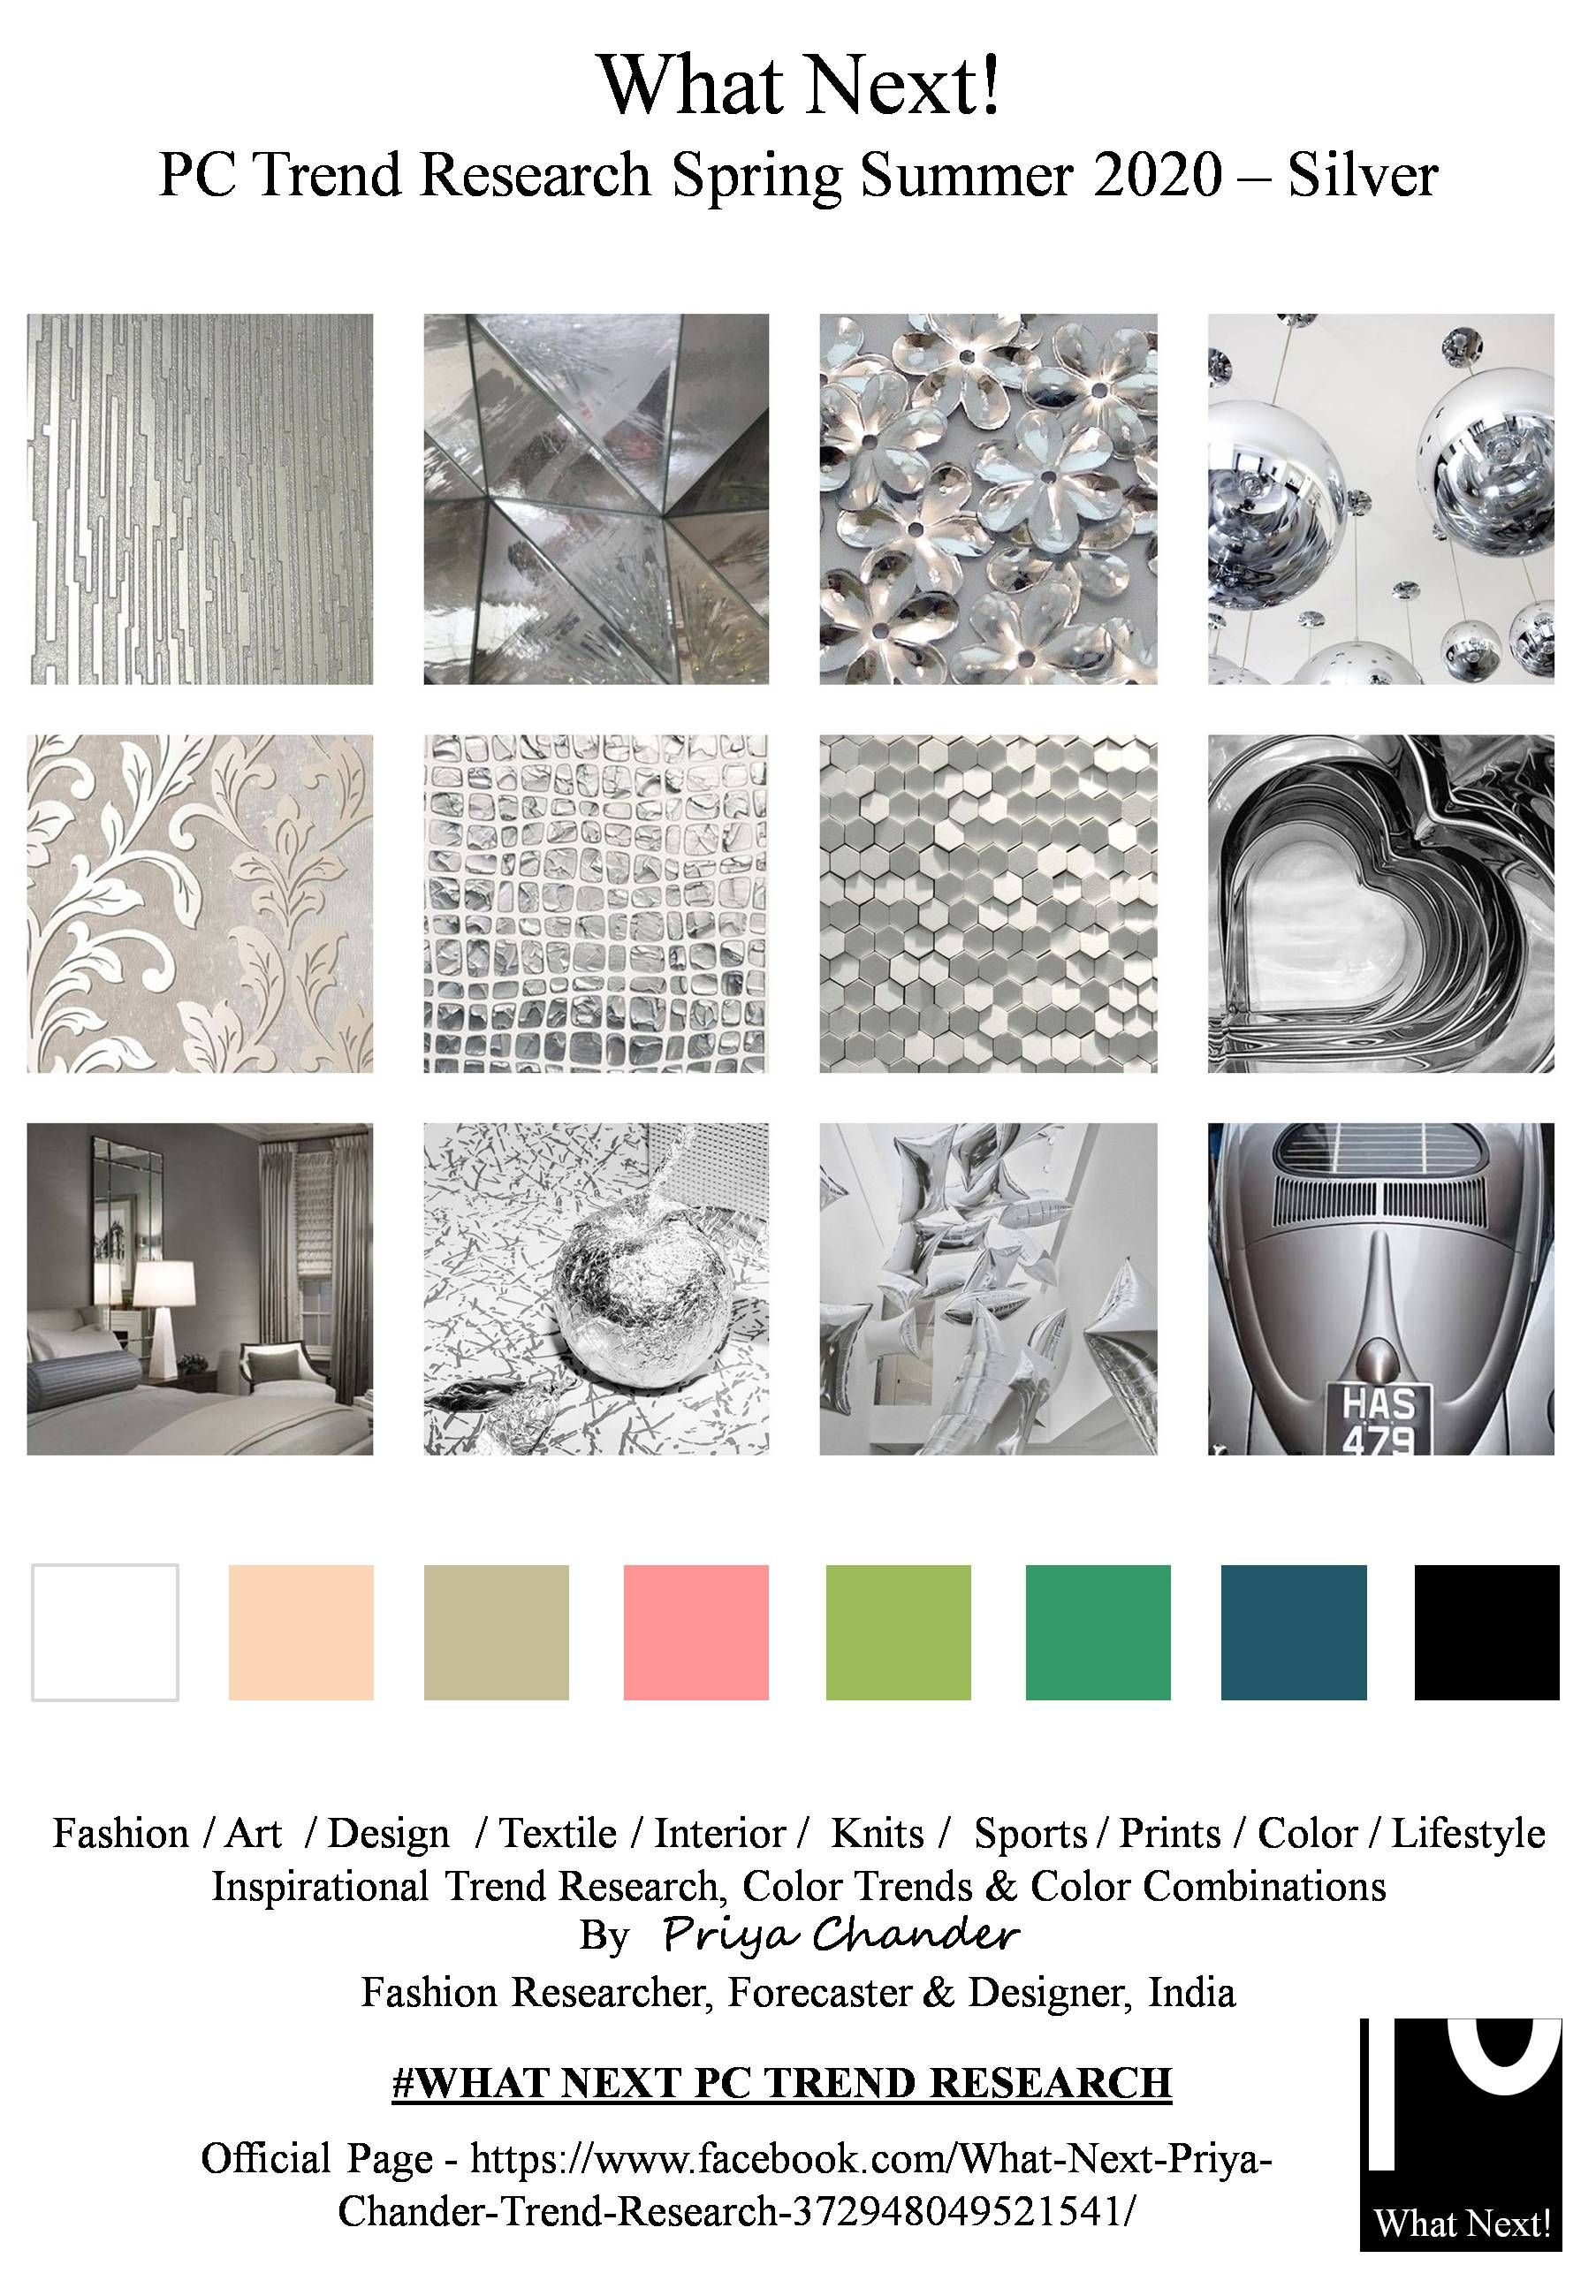 Christmas Color Trends 2020.Silver Ss2020 Fashion Forecasting Color Trends 2020